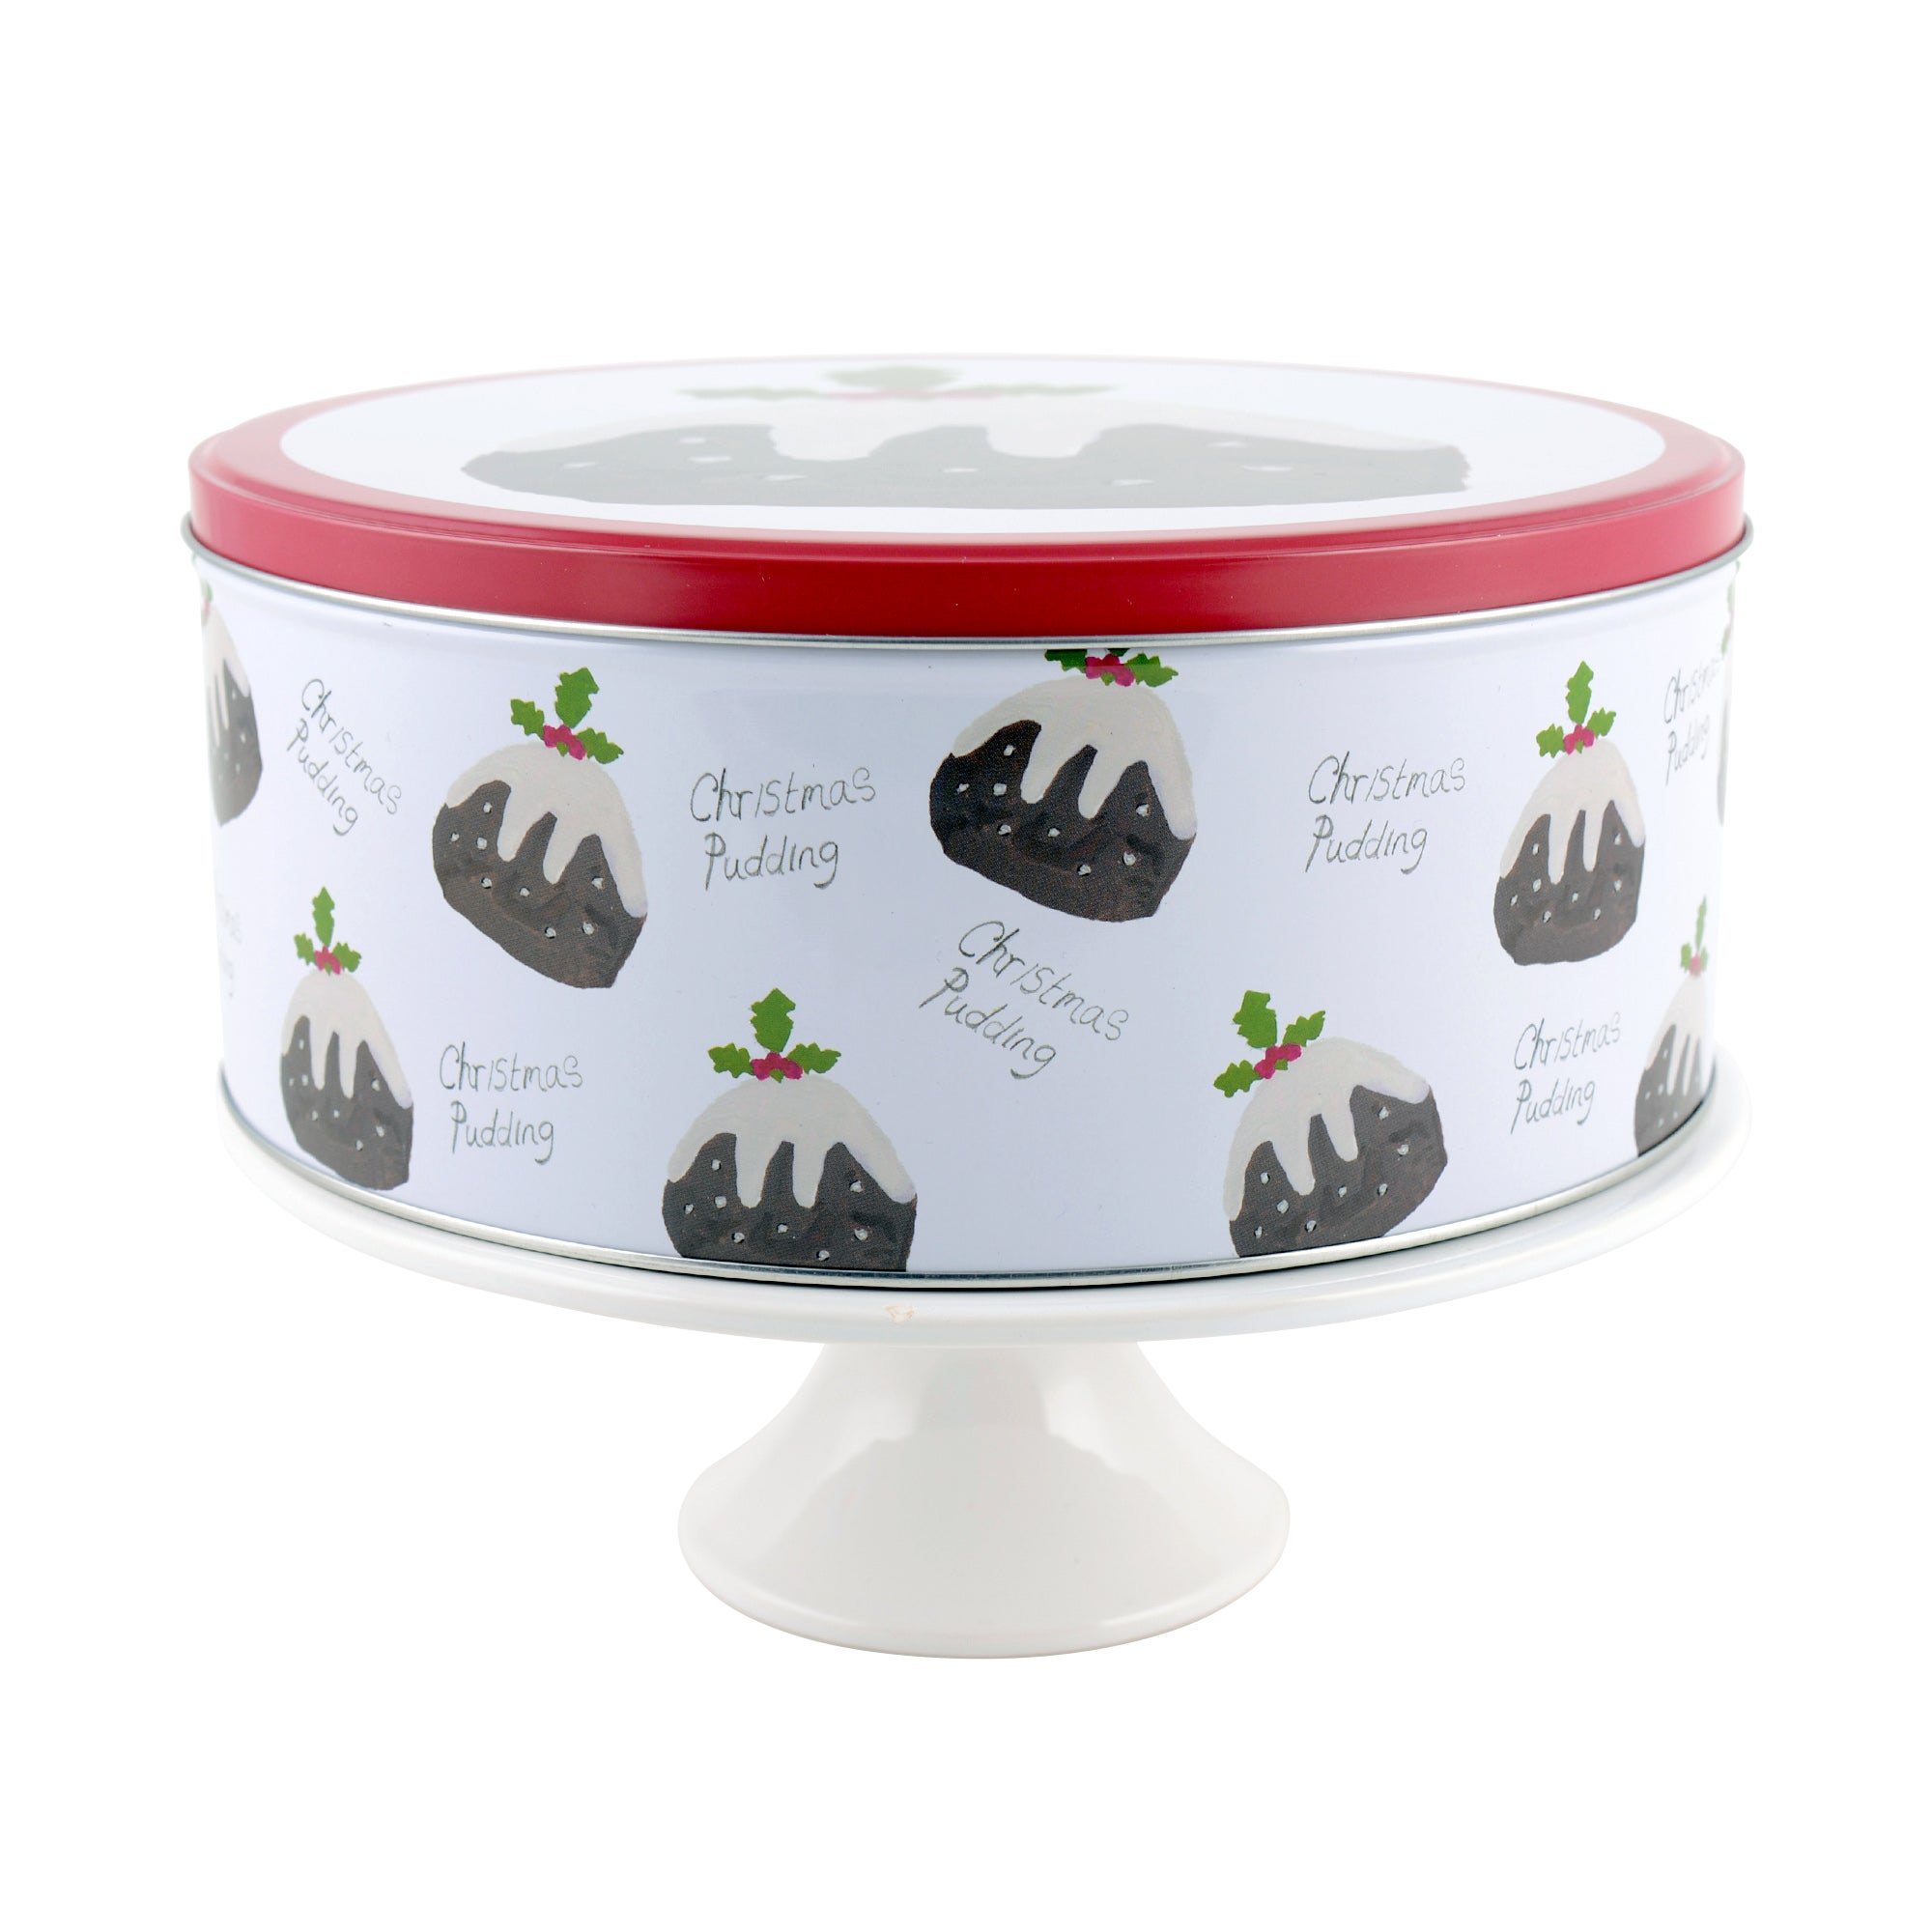 Christmas Pudding Cake Stand and Tin Set